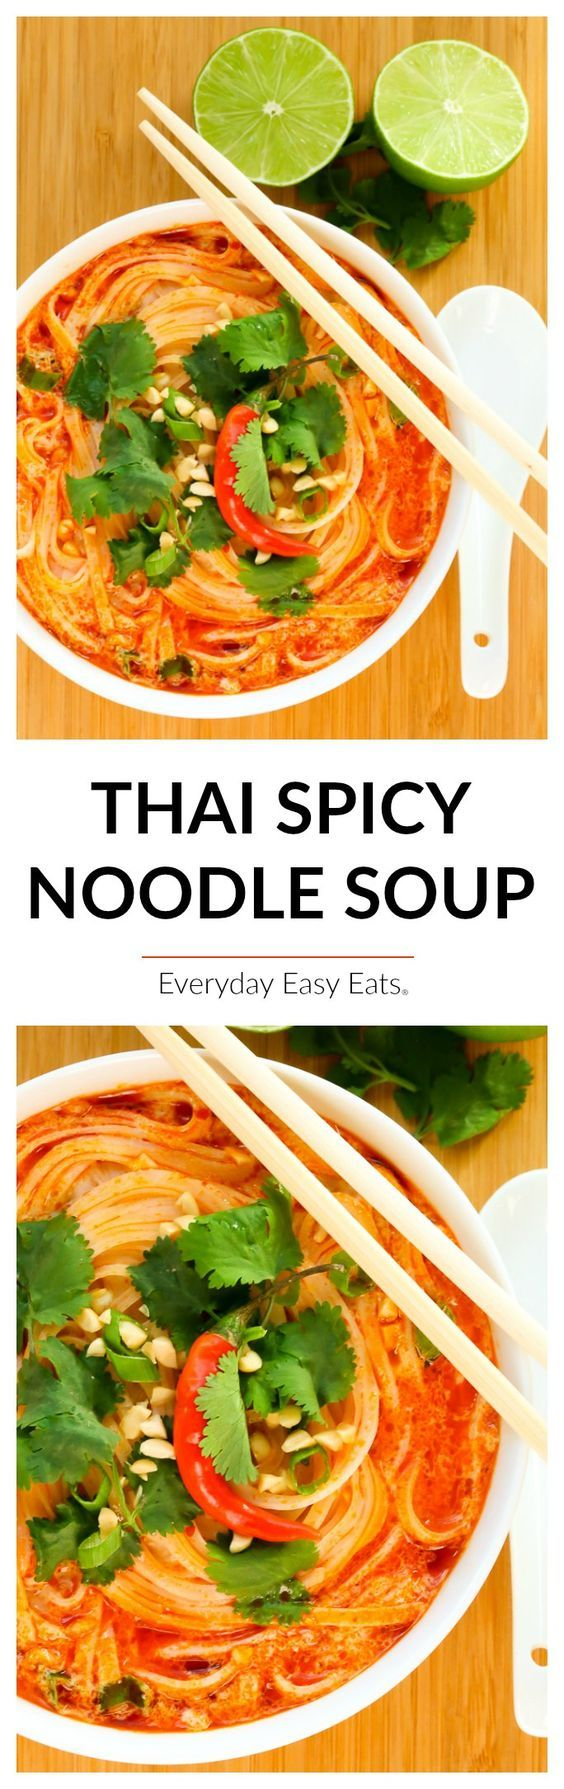 This easy Thai Spicy Noodle Soup recipe is quick, hearty and infused with fragrant Thai flavors. A soul-warming soup that's ready to eat in just 15 minutes!